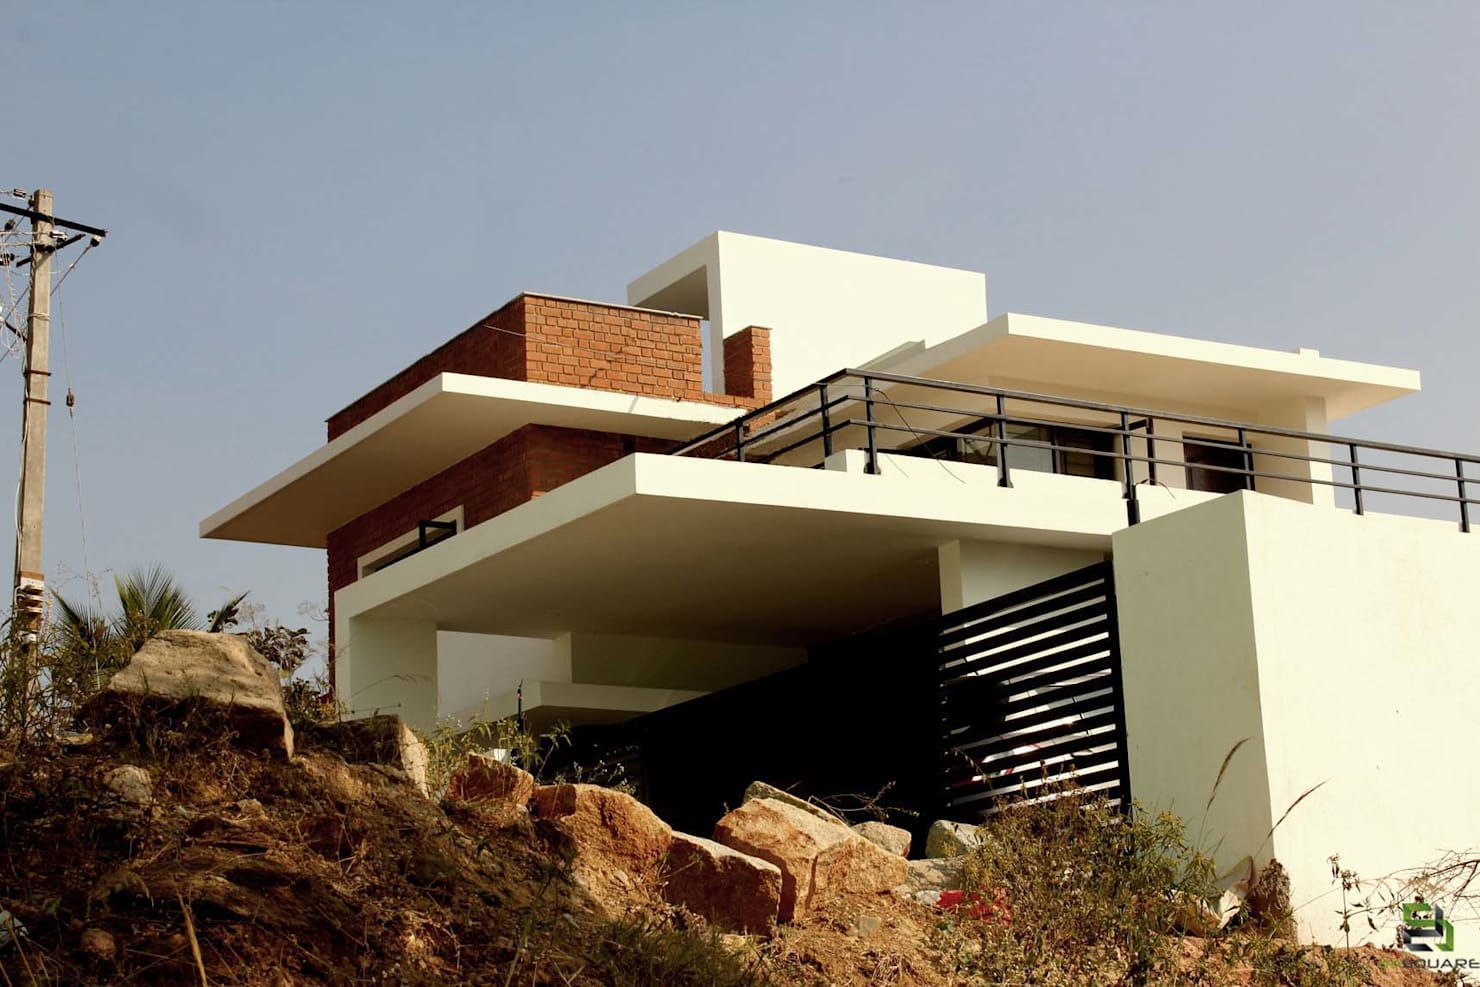 Facade design ideas from a home in Bangalore